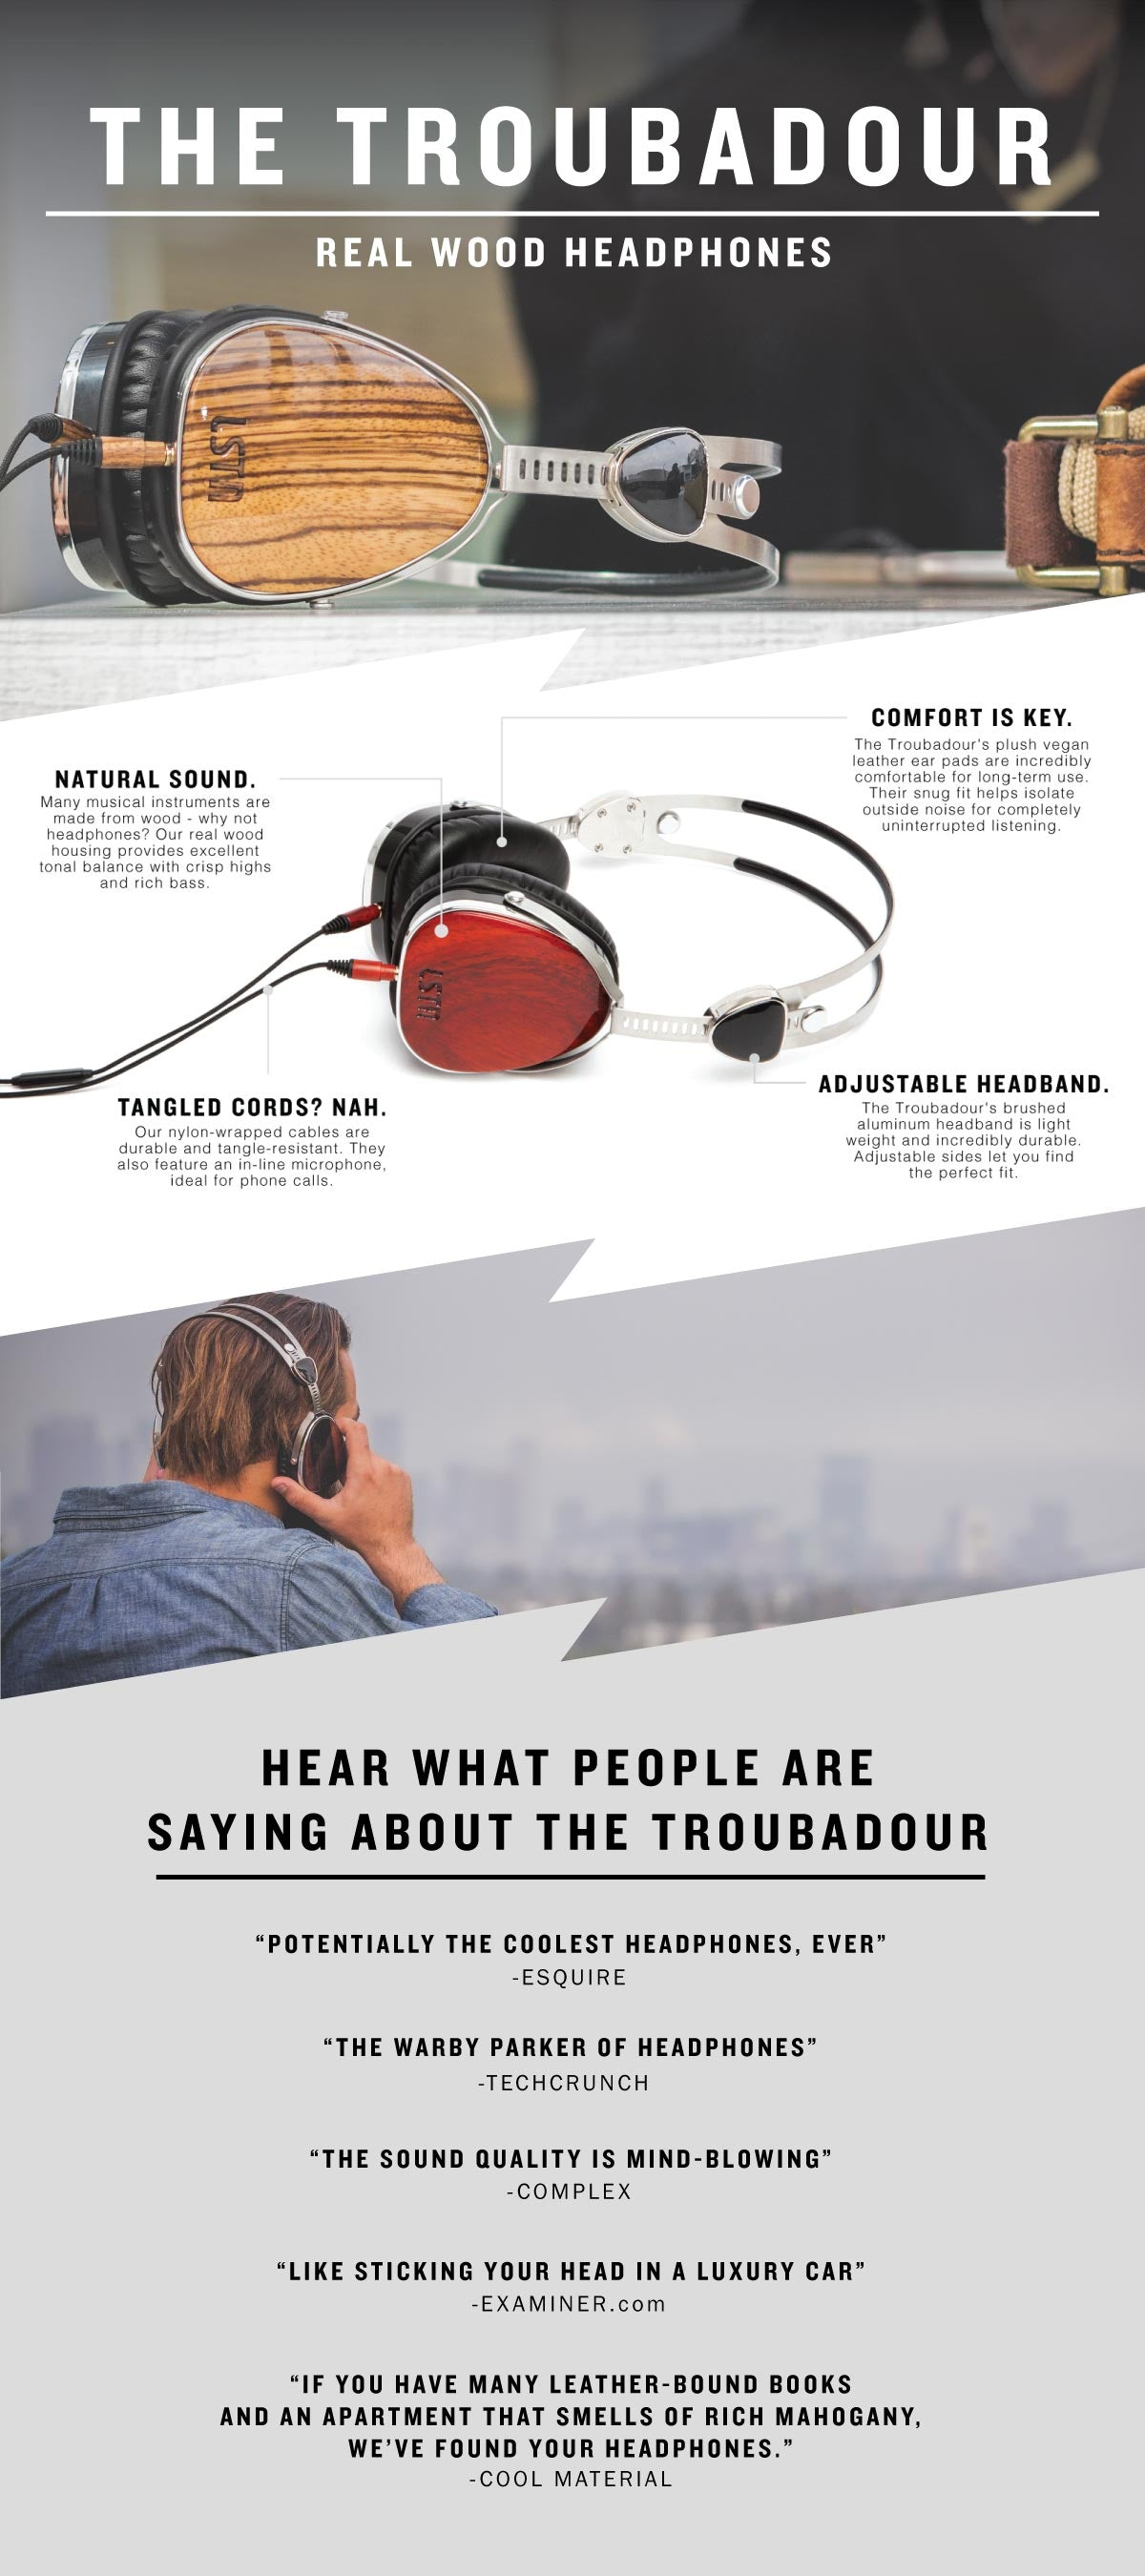 lstn headphones troubadour infographic